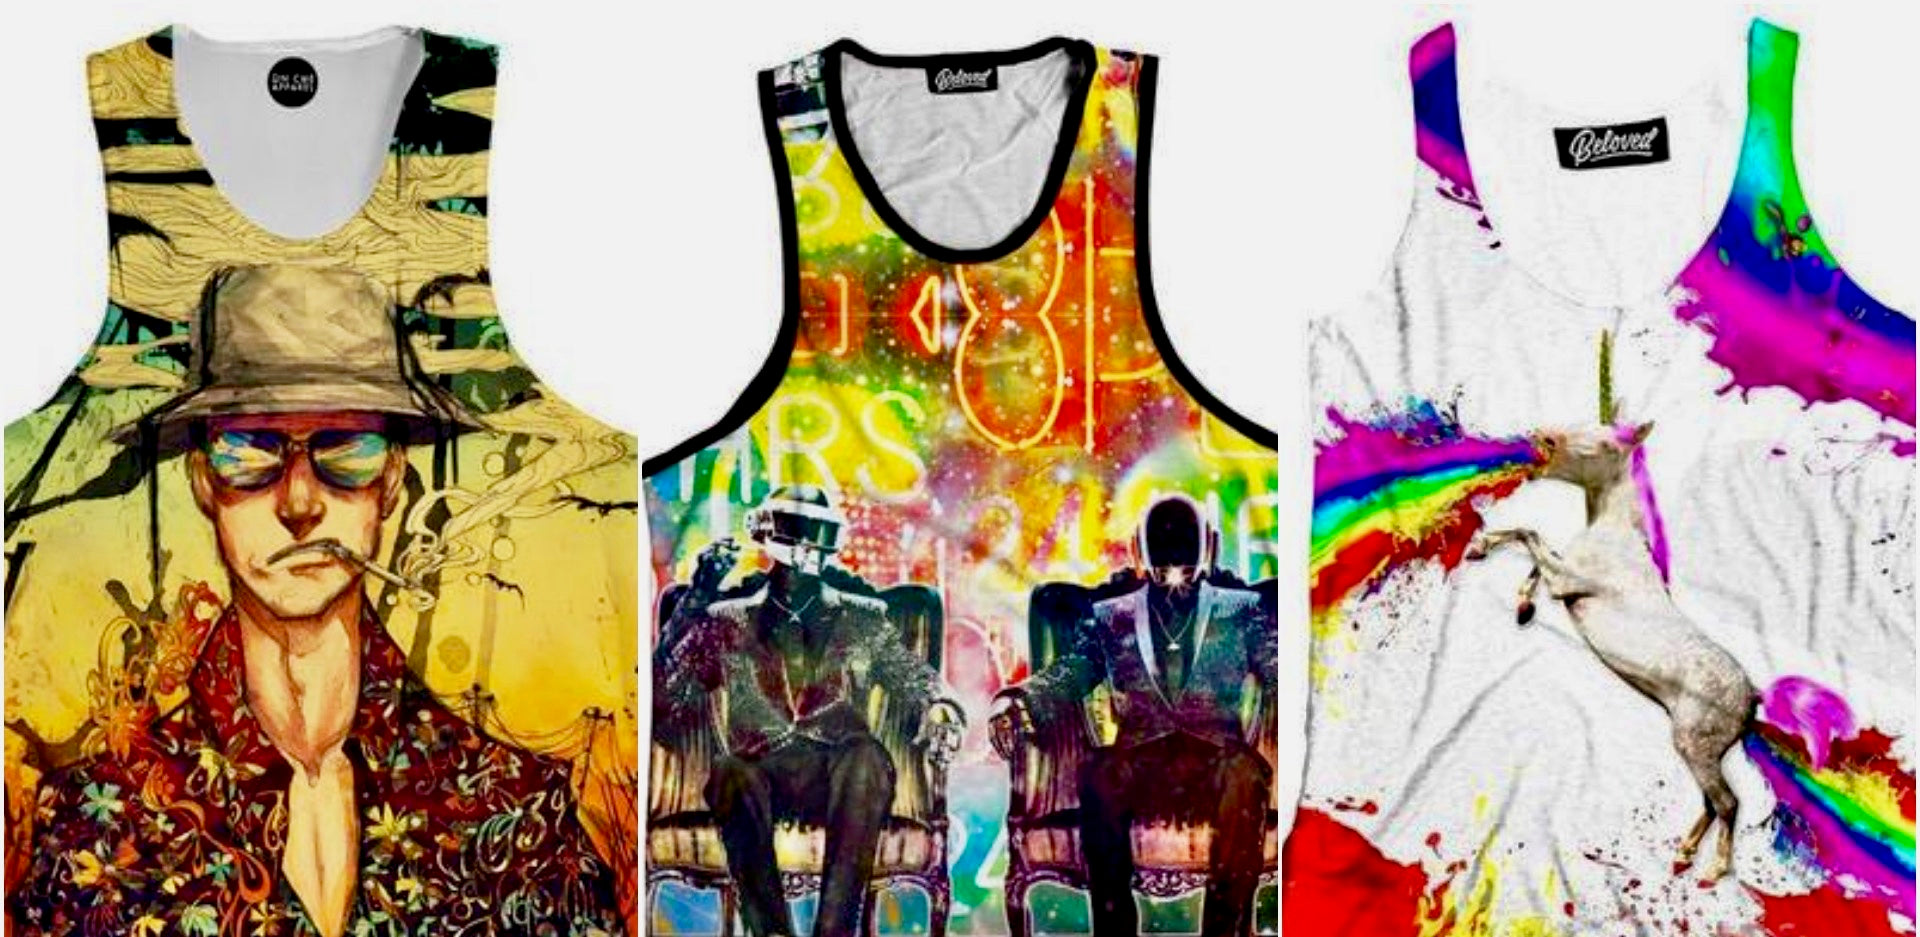 7 Lucky Tank Tops You Need For Edc Las Vegas Iedm On Blast